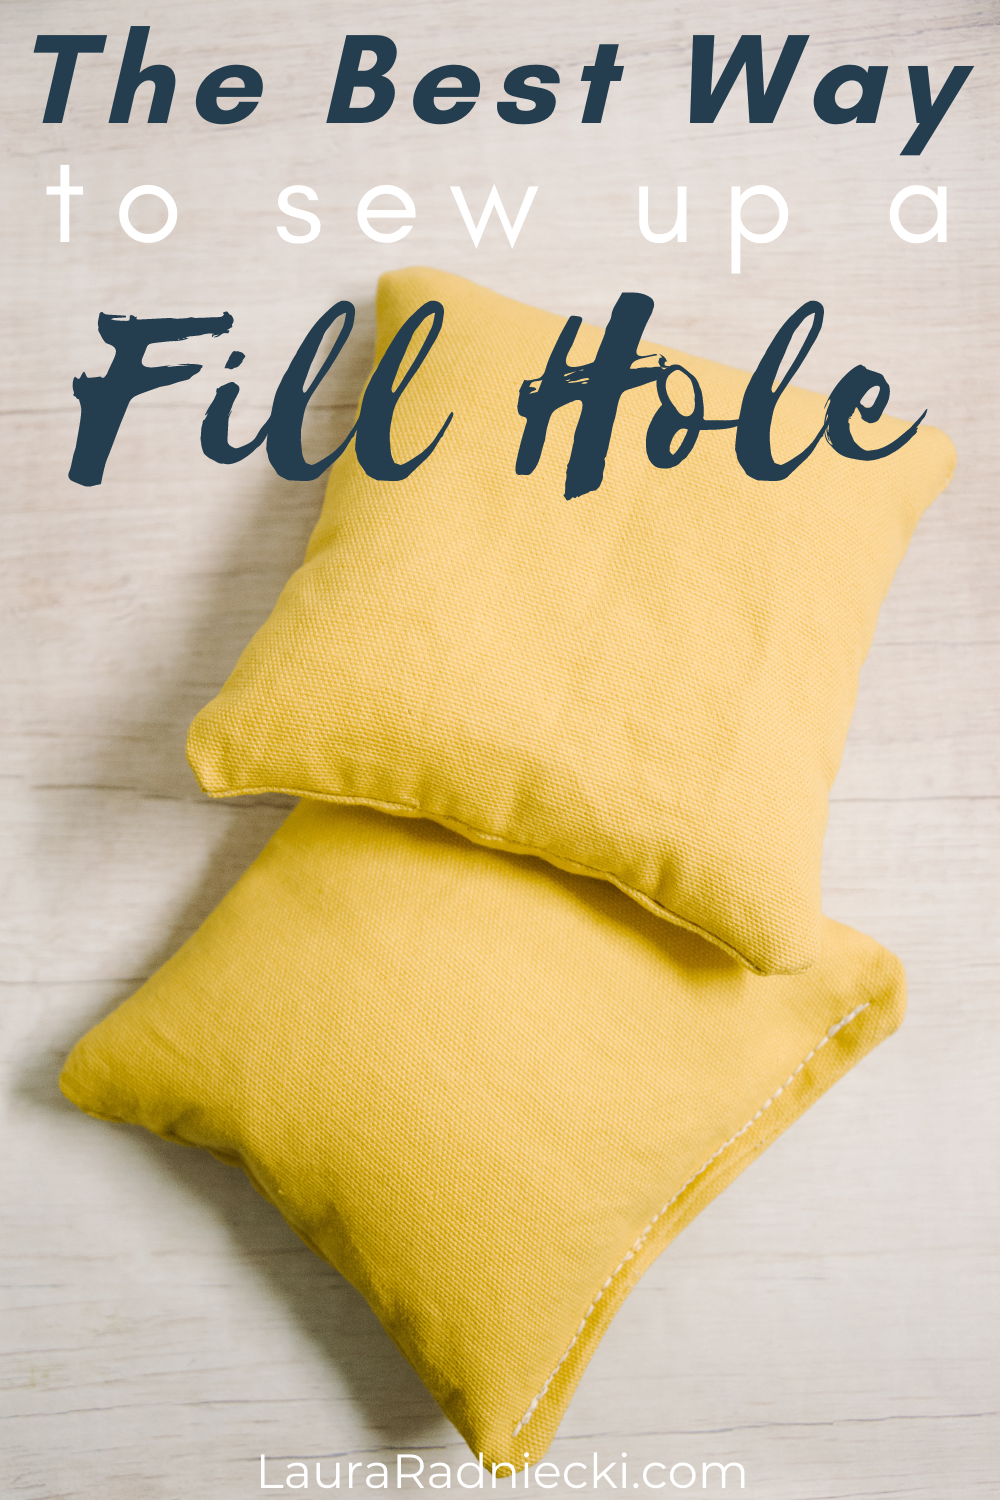 the best way to sew up a fill hole